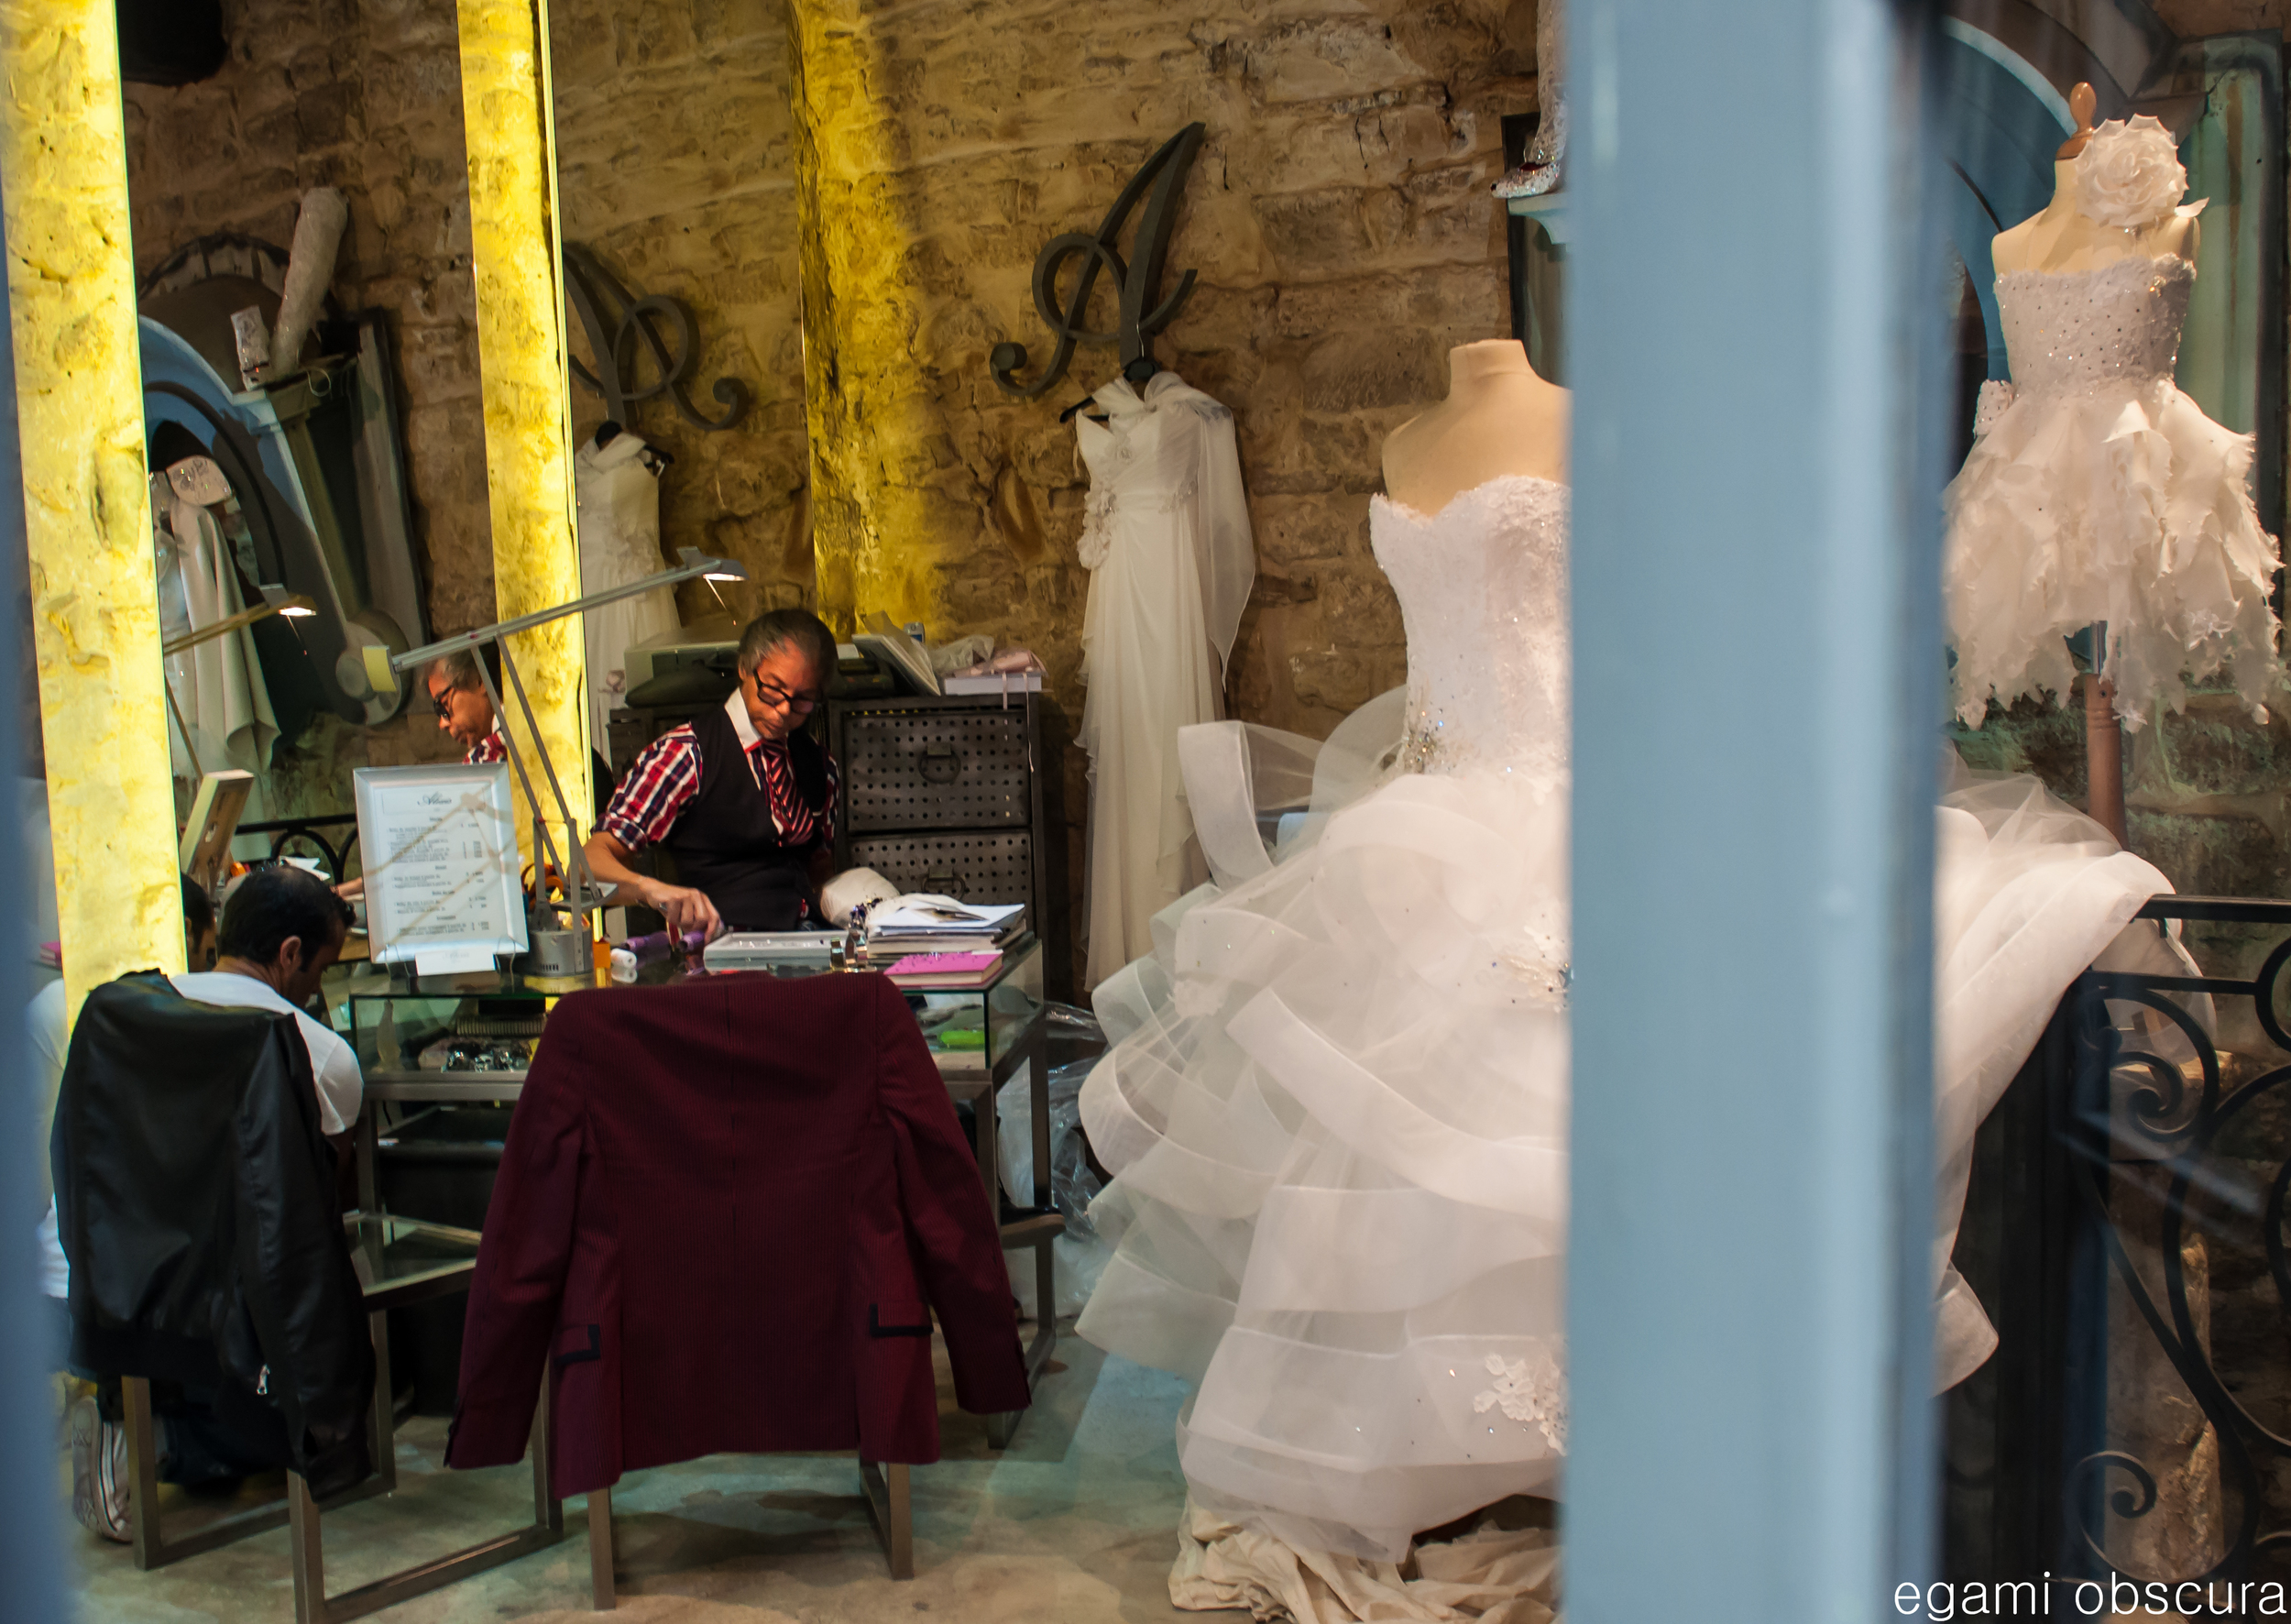 The Couture Wedding Dress-Maker